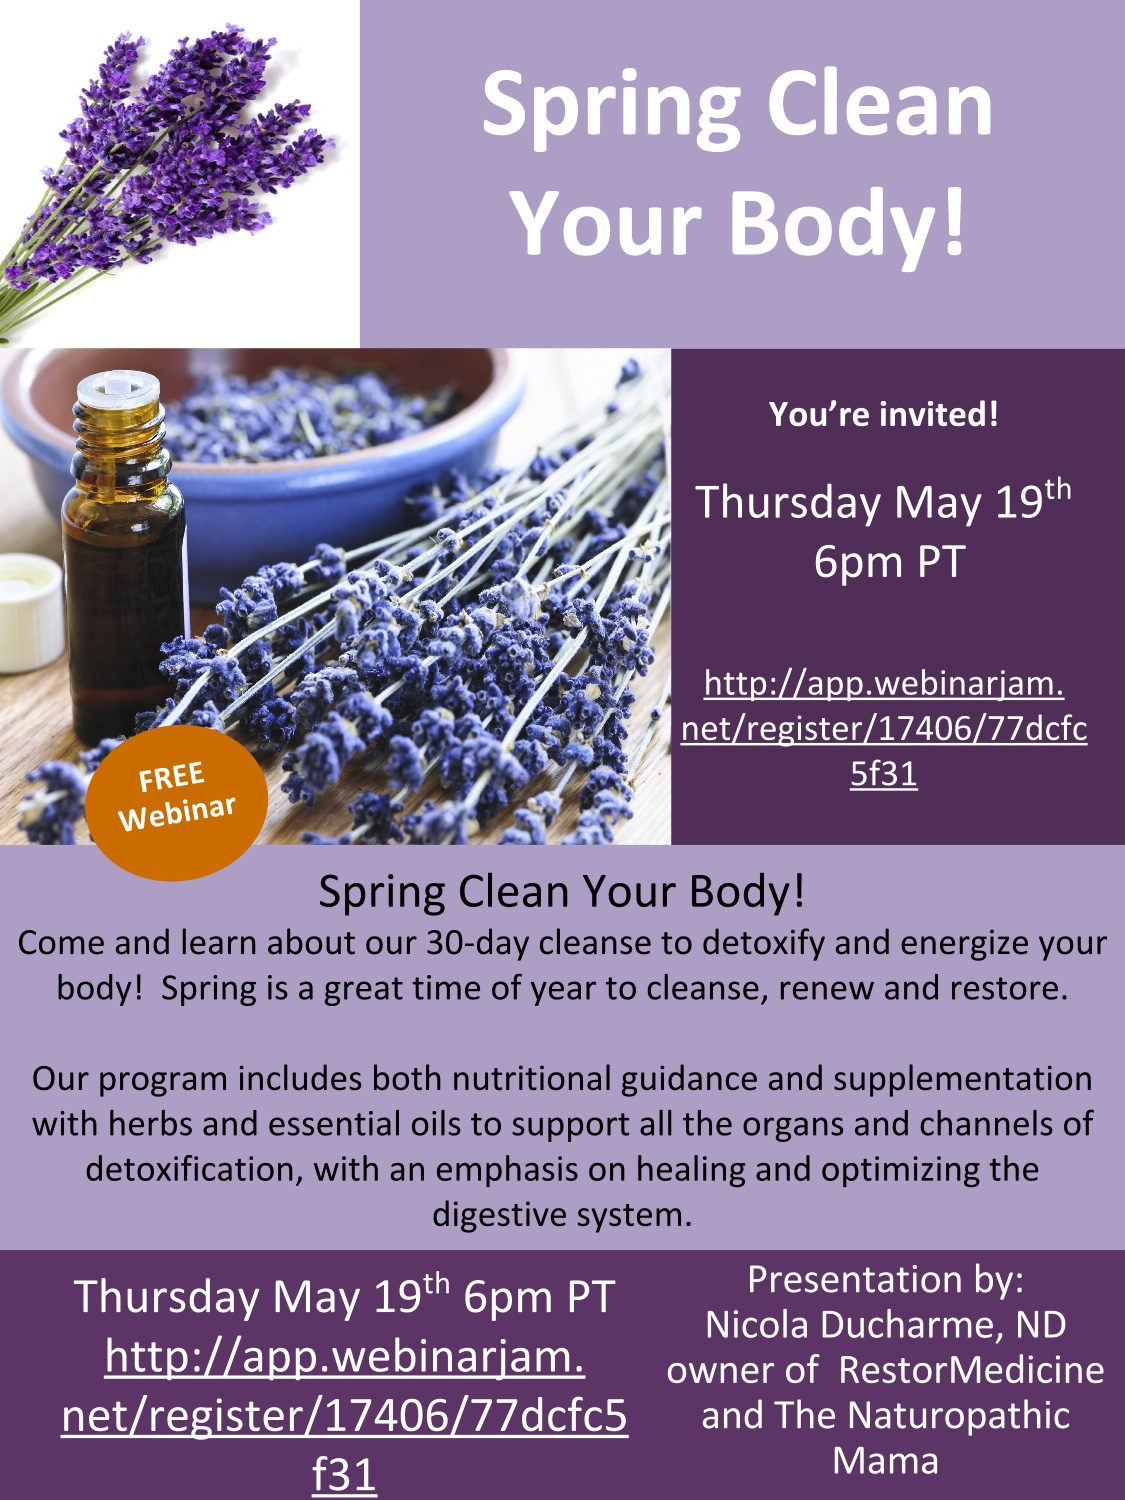 Webinar: Spring Clean Your Body!! - The Naturopathic Mama